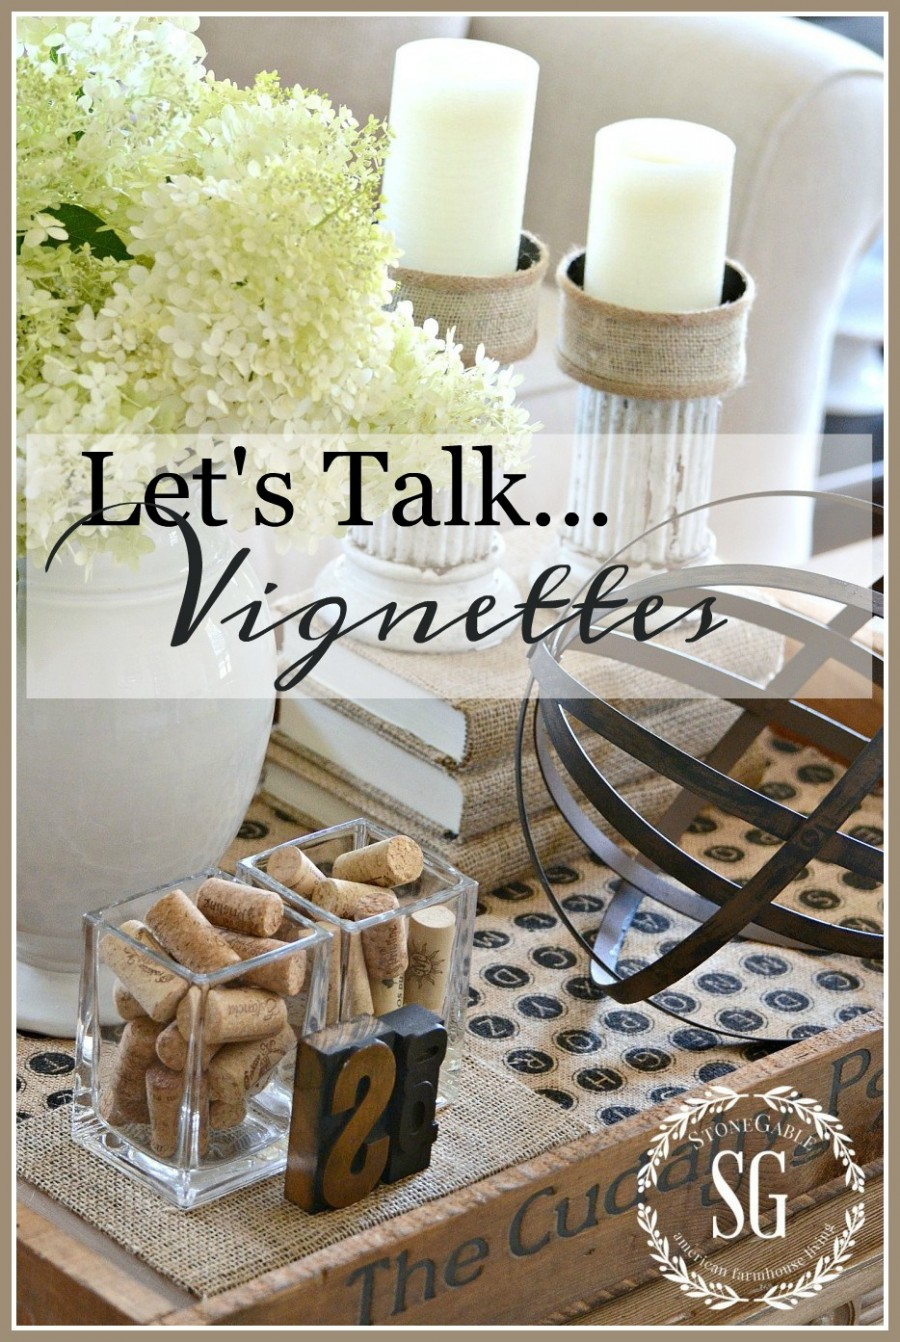 LET'S TALK VIGNETTES!